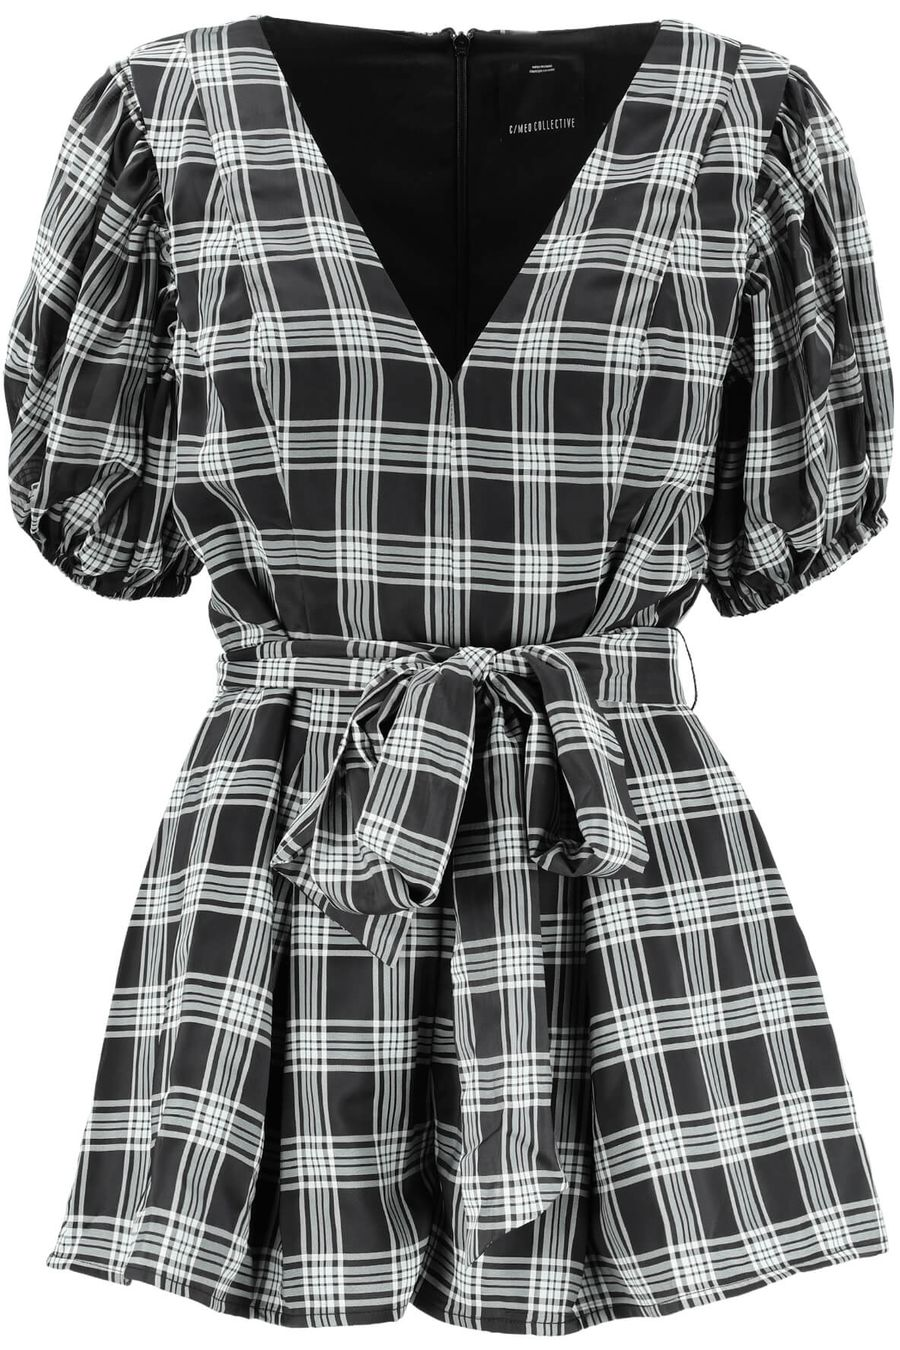 cameo-solace-playsuit-1